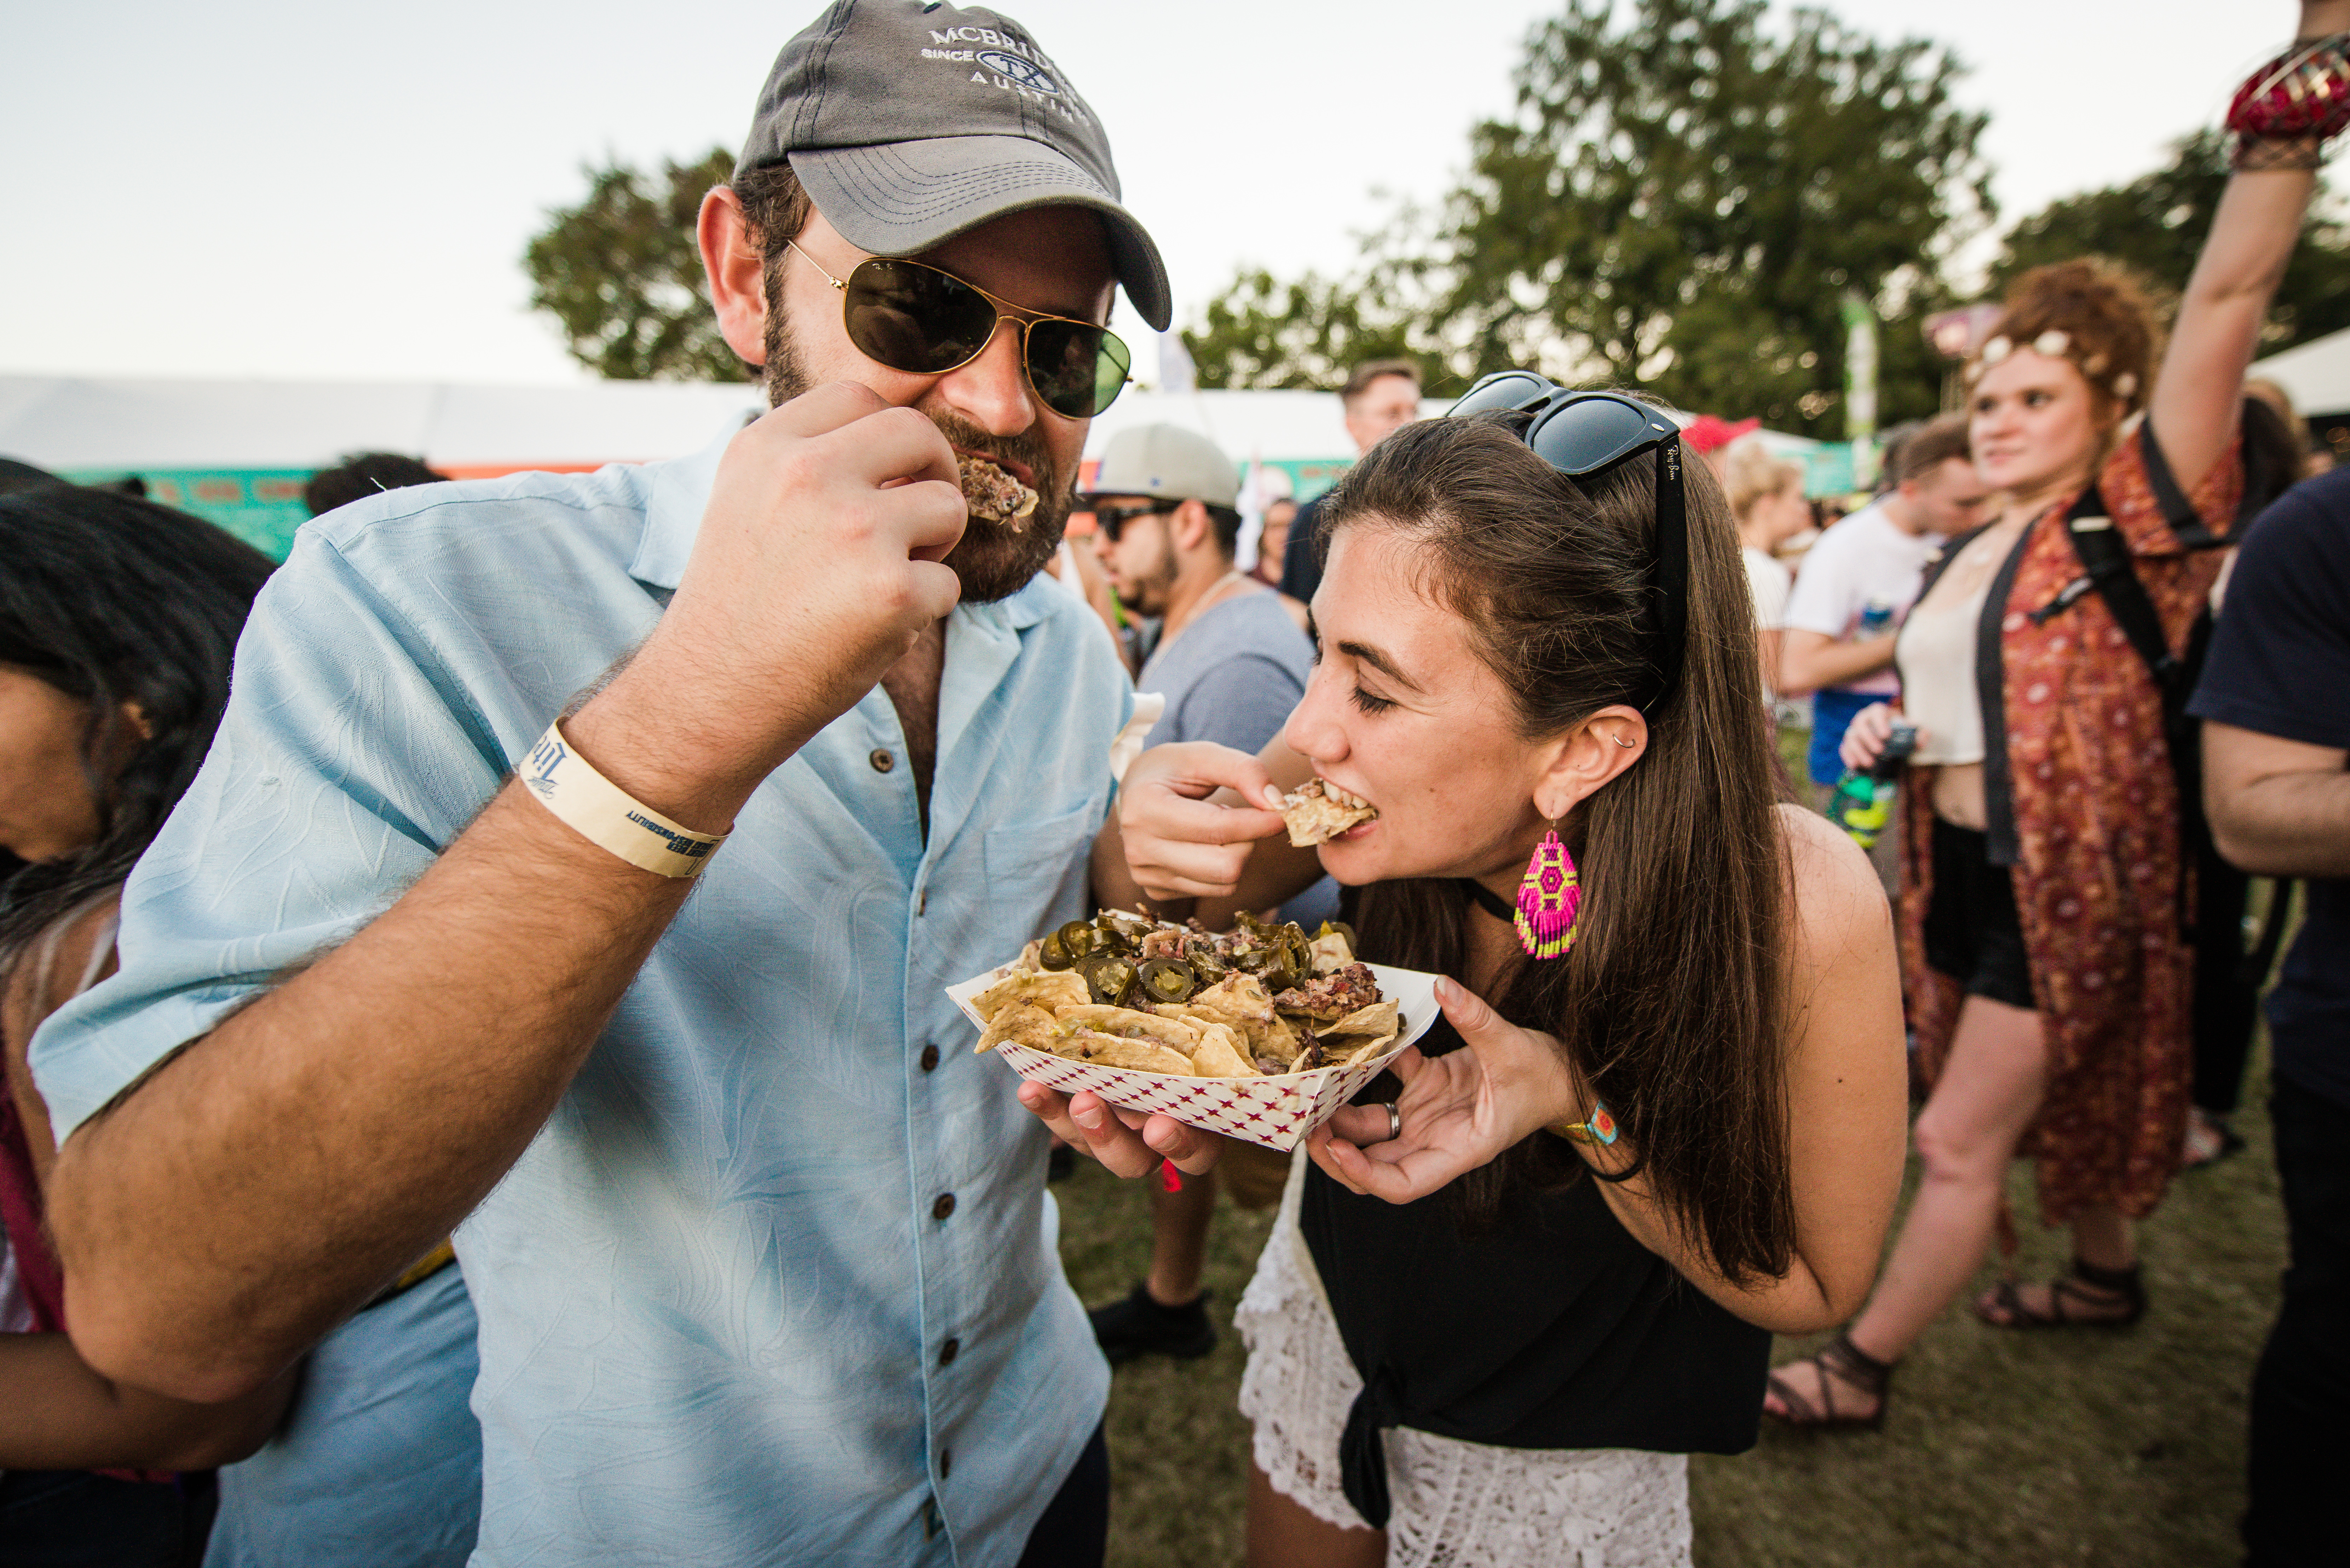 Eating at Austin City Music Festival in 2017